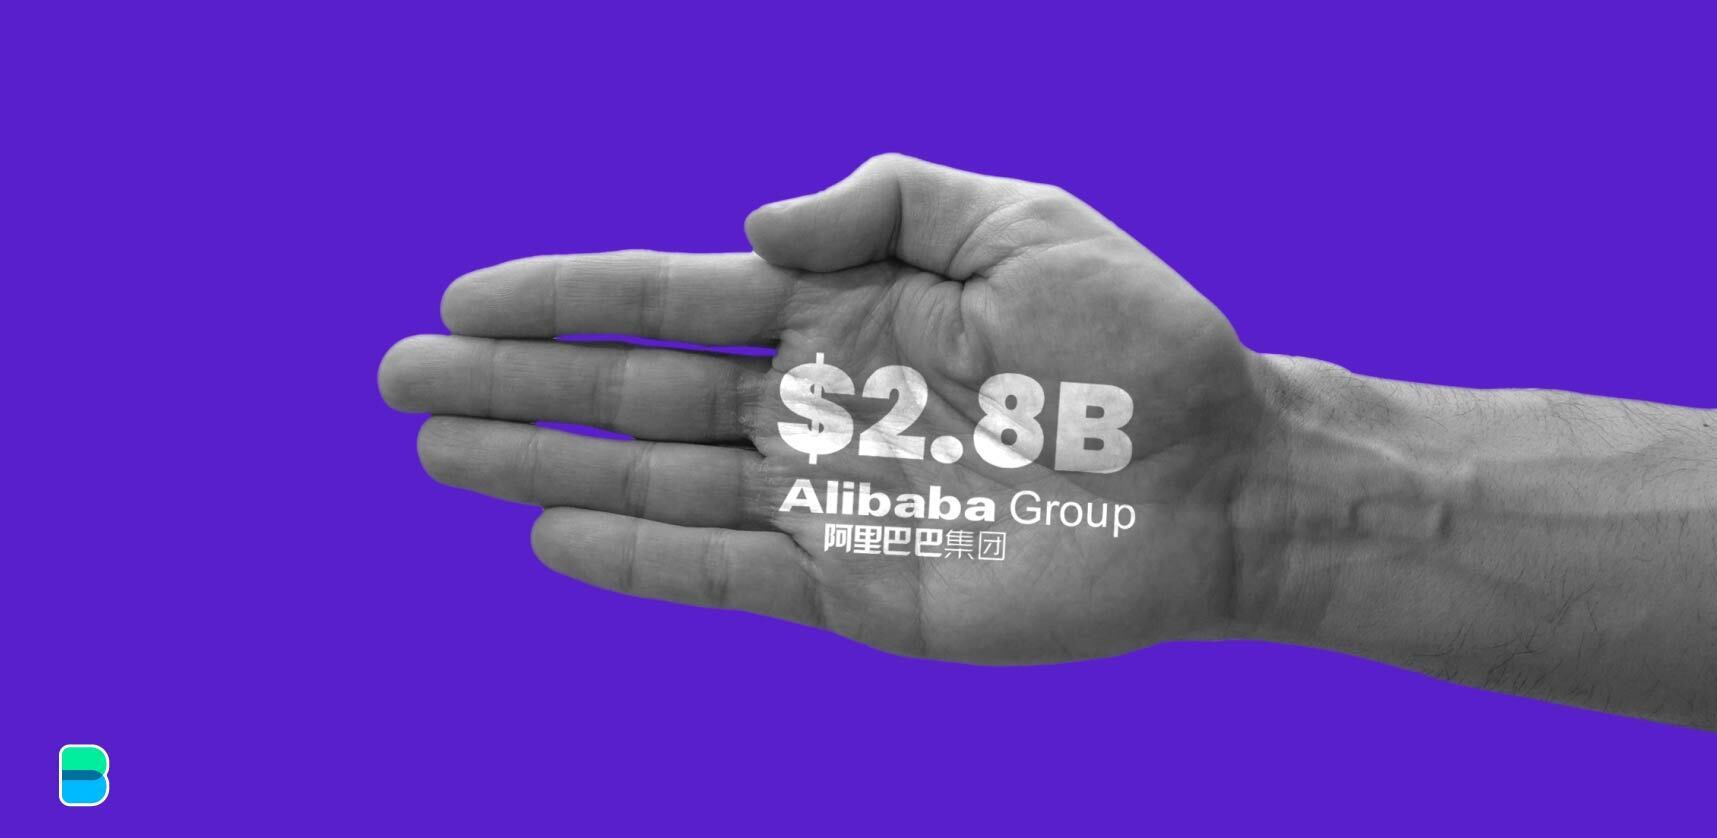 Alibaba slapped on the wrist with a $2.8b fine